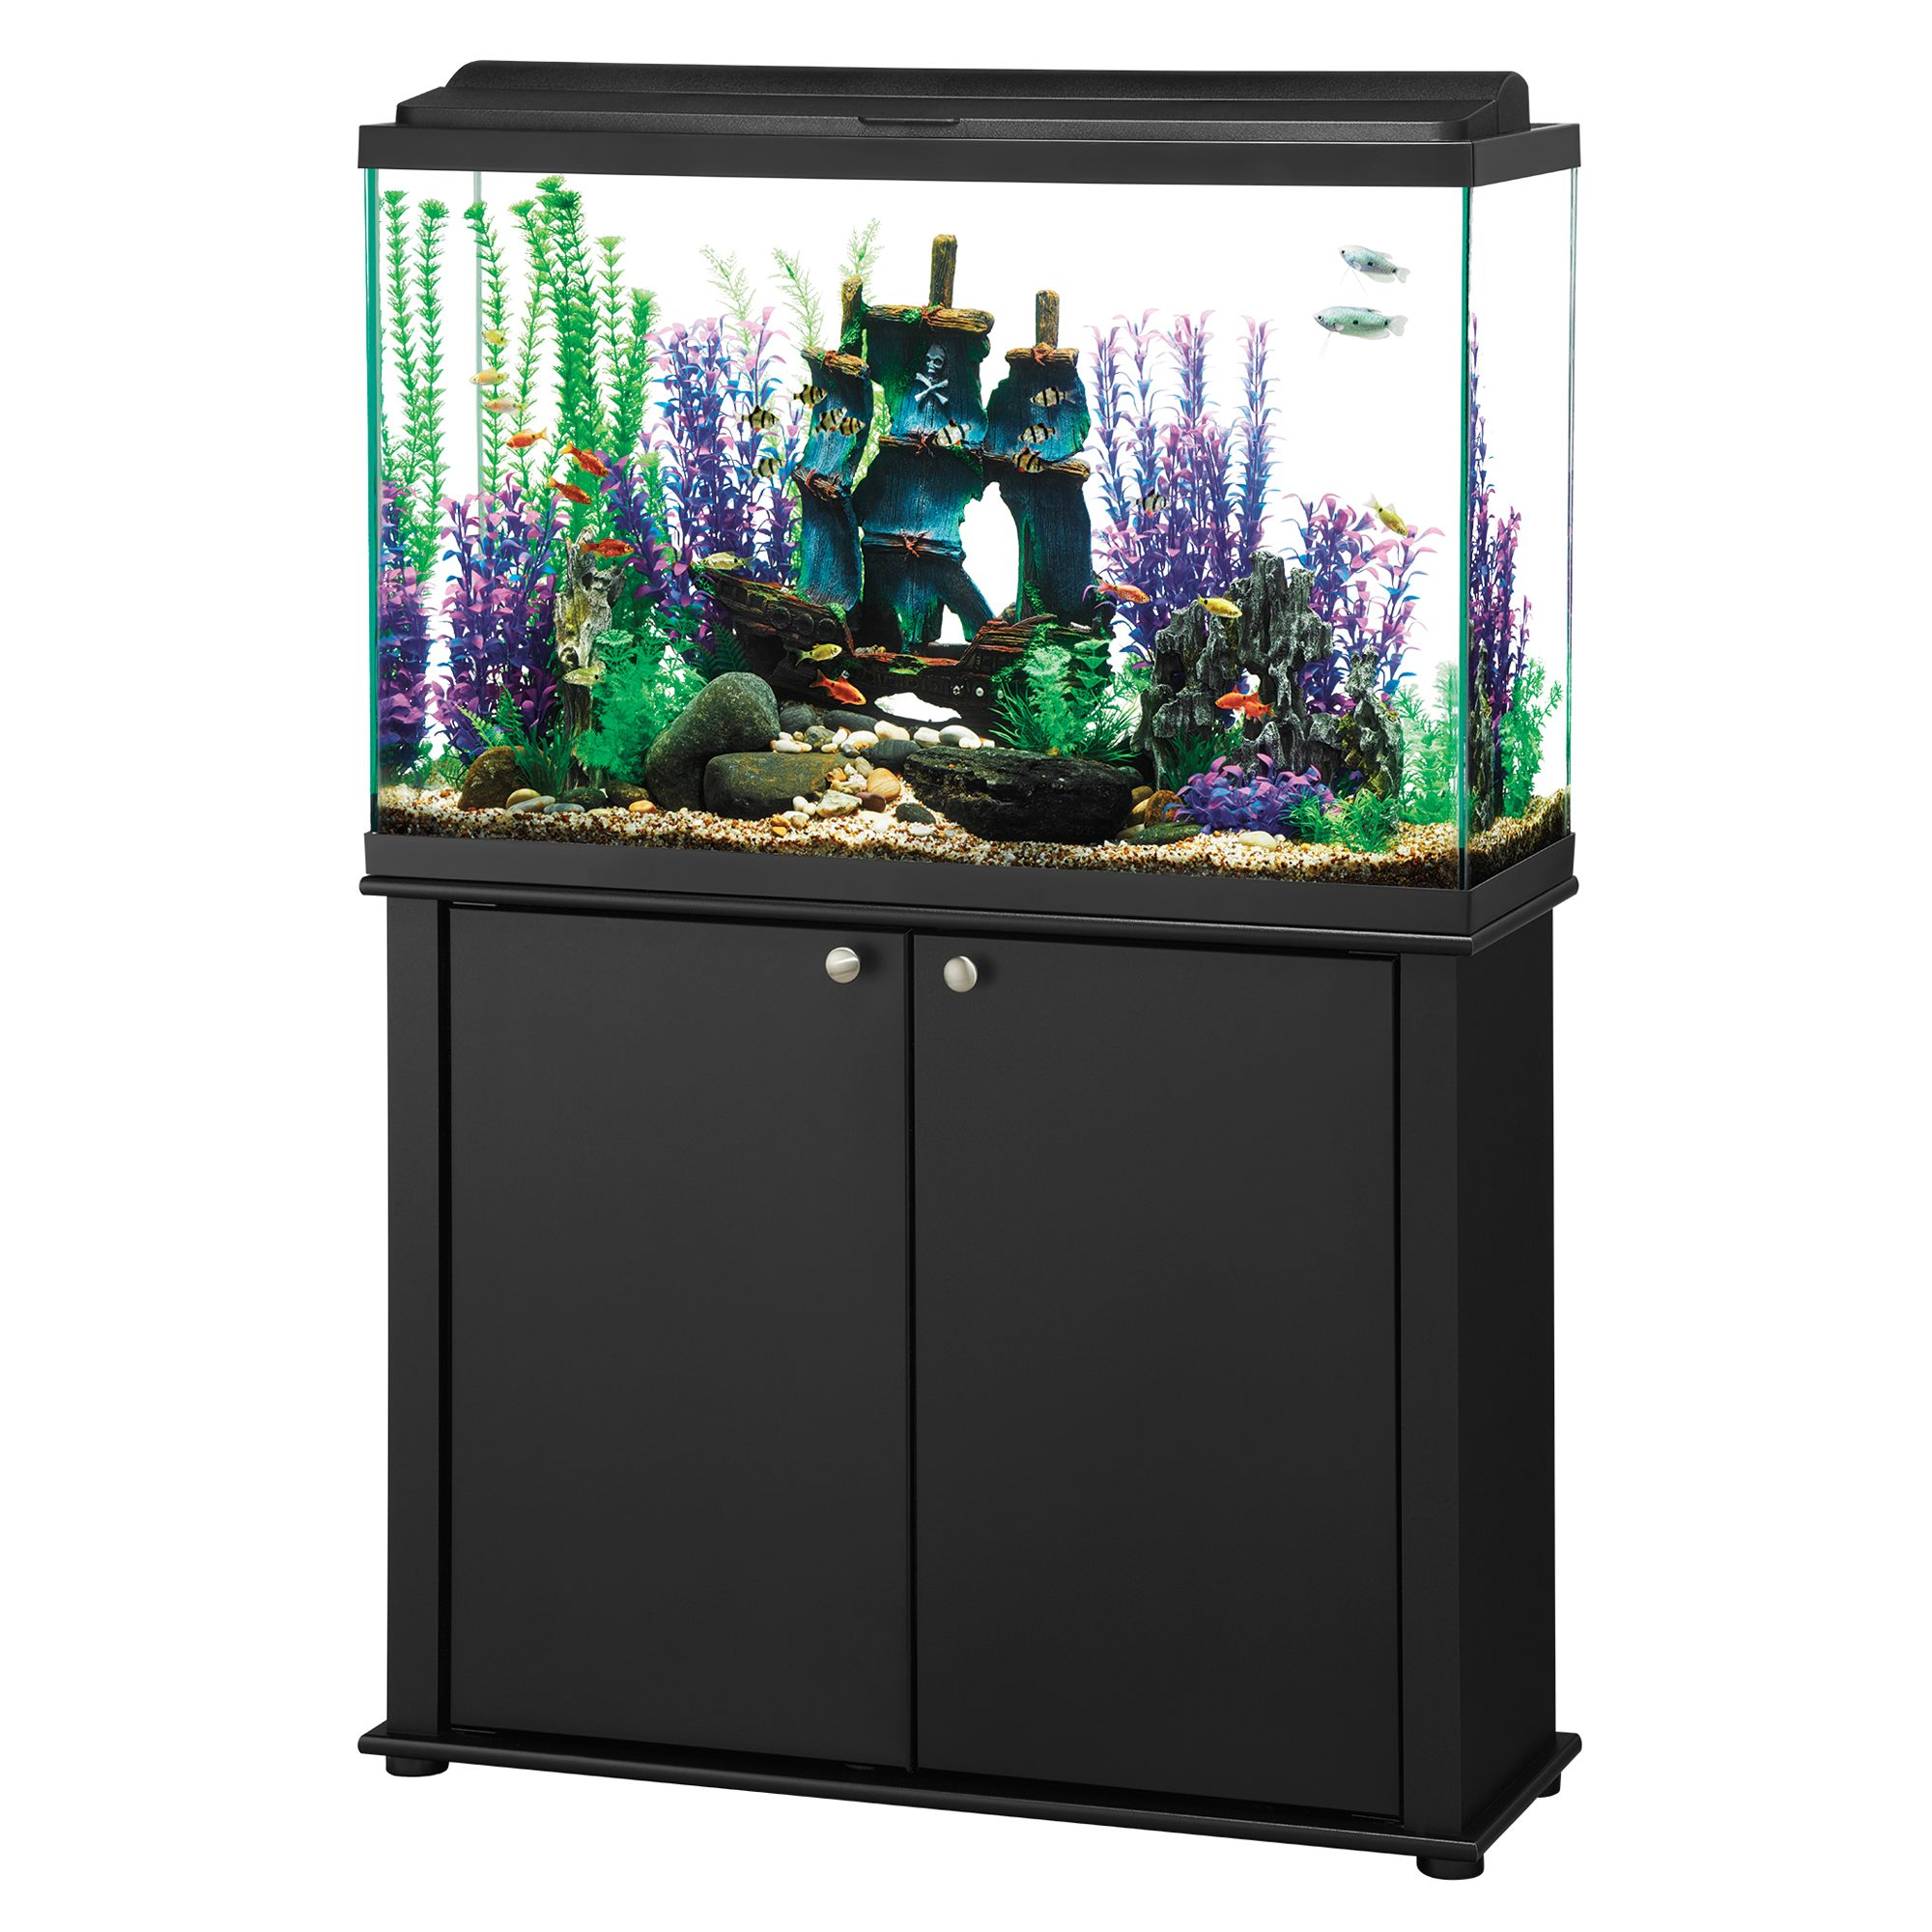 Aqueon 45 Gallon LED Aquarium Ensemble